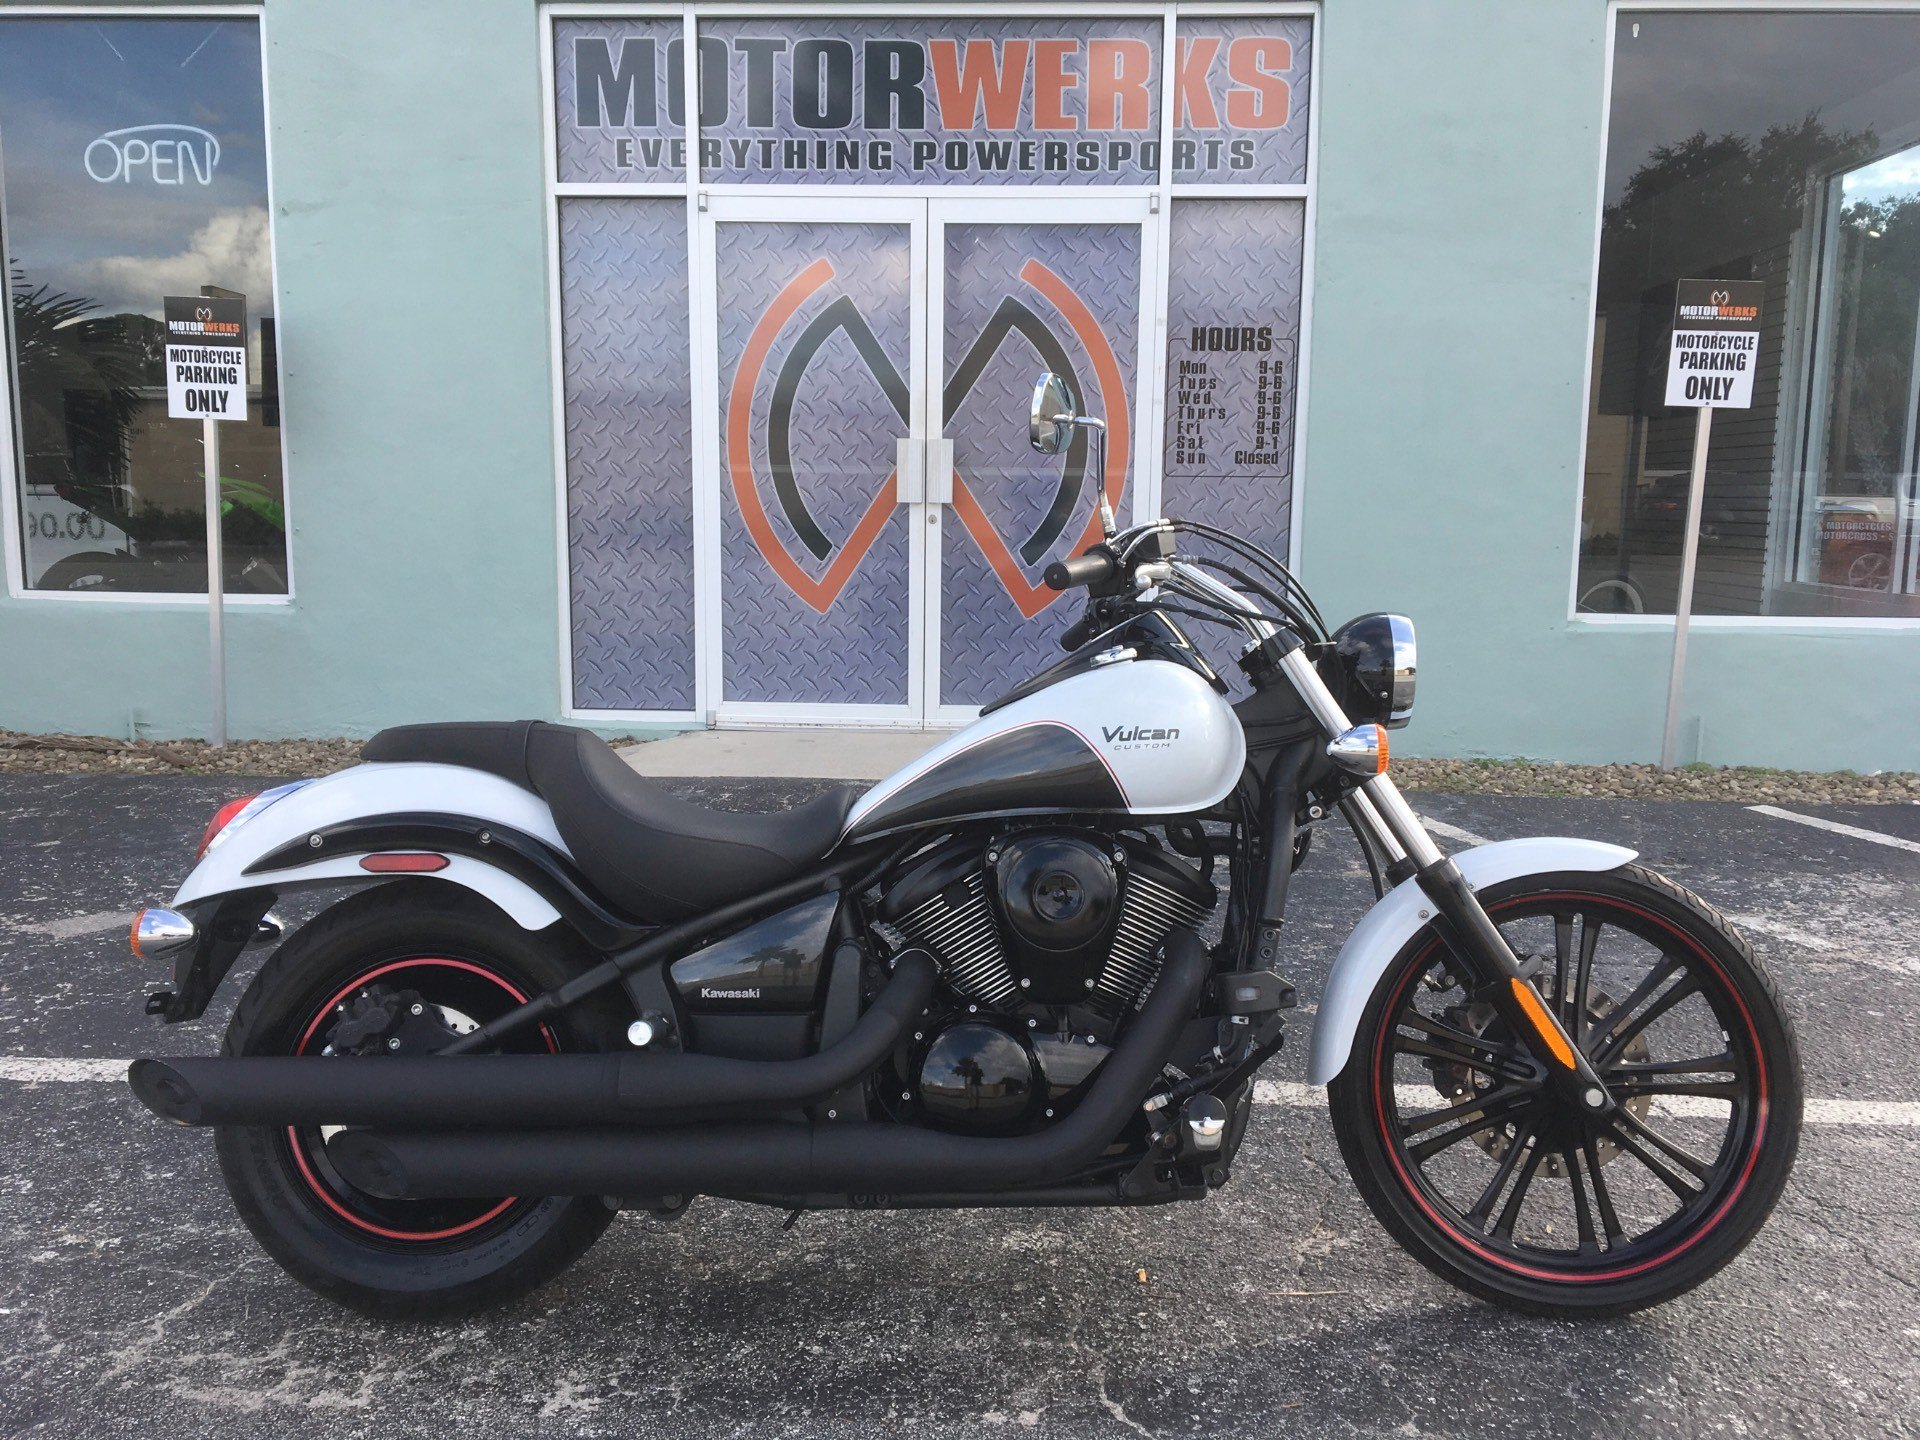 used 2016 kawasaki vulcan 900 custom motorcycles in cocoa fl white n a. Black Bedroom Furniture Sets. Home Design Ideas